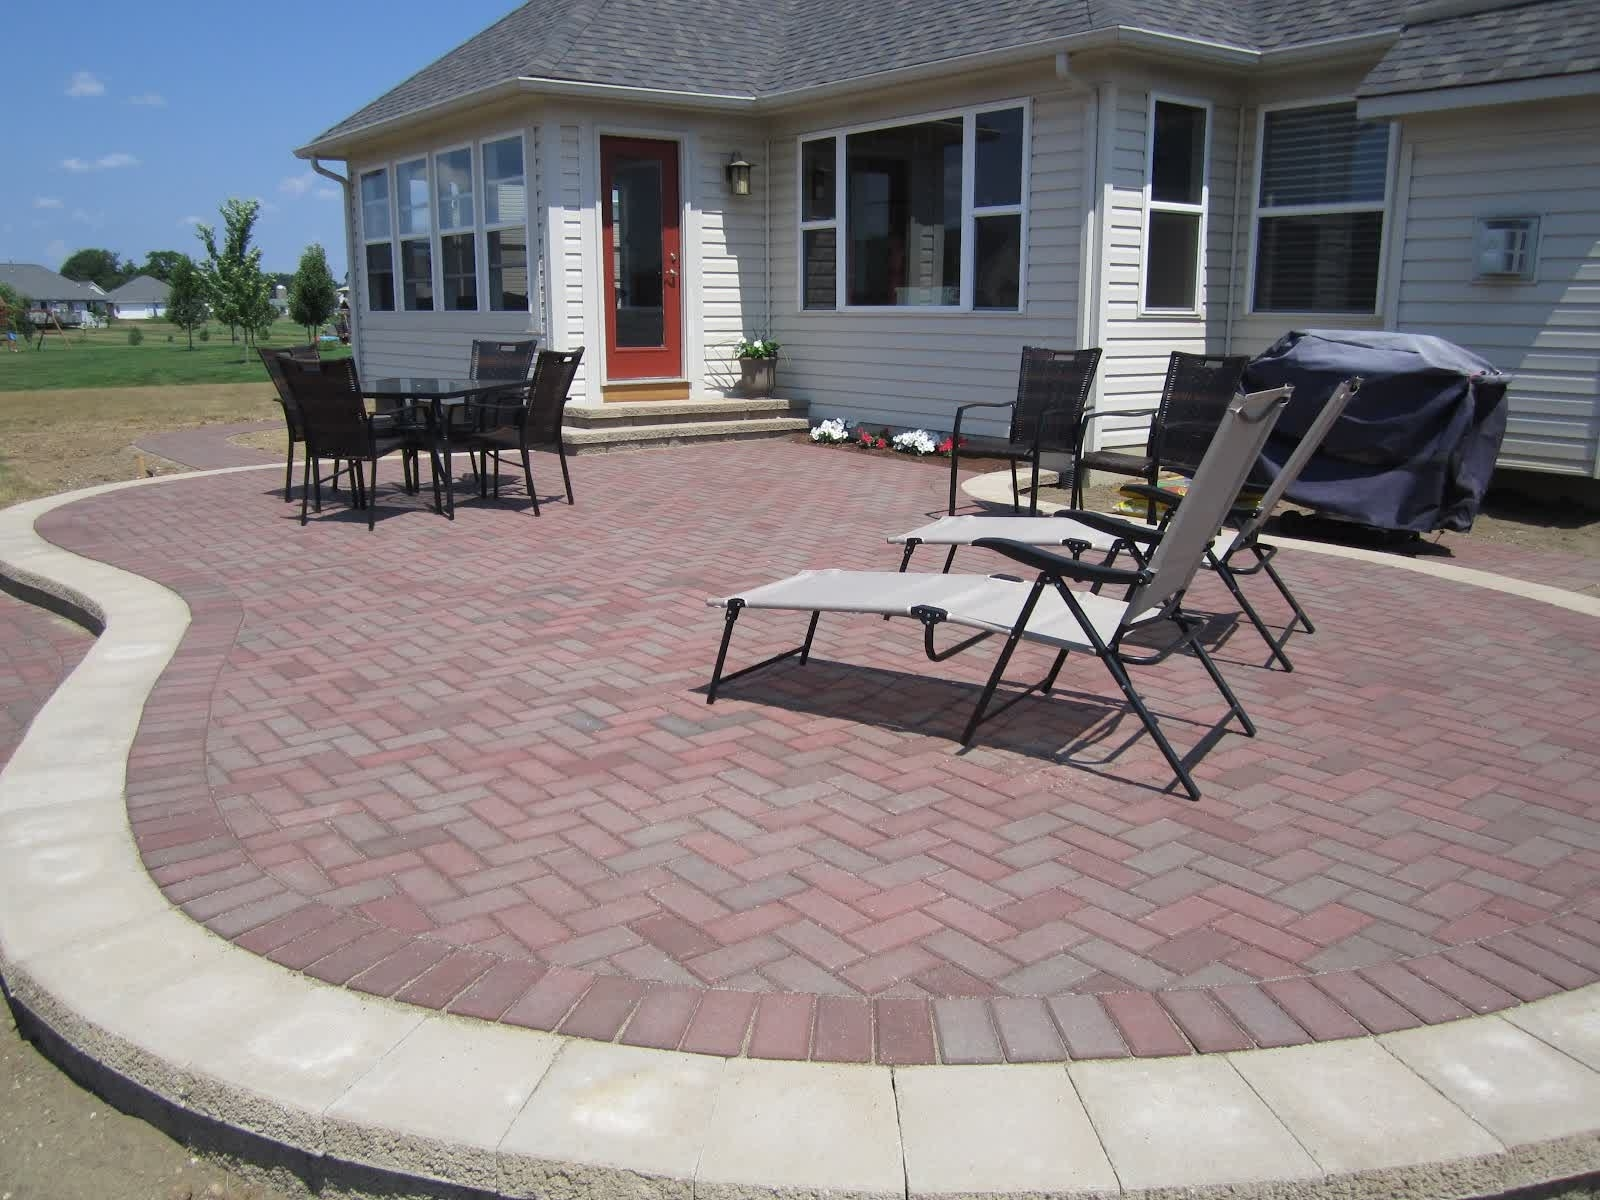 Build Contended And Stunning Patio And Pathways With Best Brick